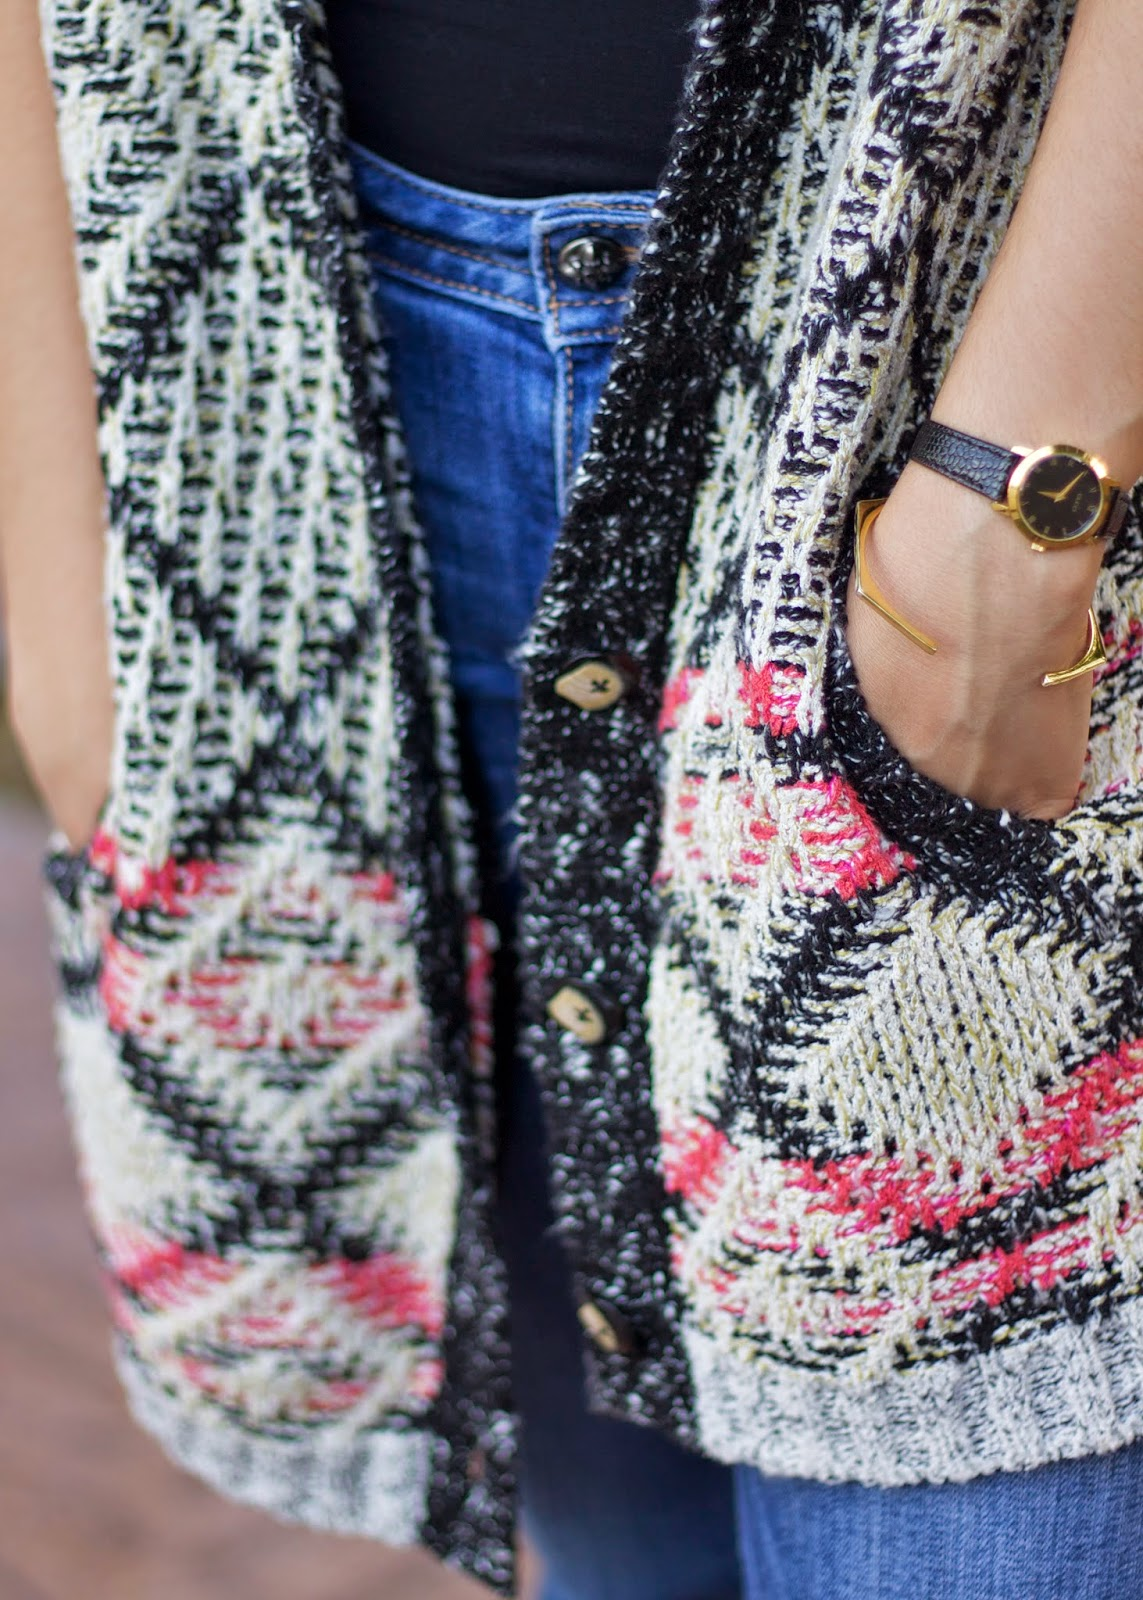 Gorjana hexagon cuff, Gorjana jewelry blogger, Gucci watch, vintage gucci watch, casual outfit 2015